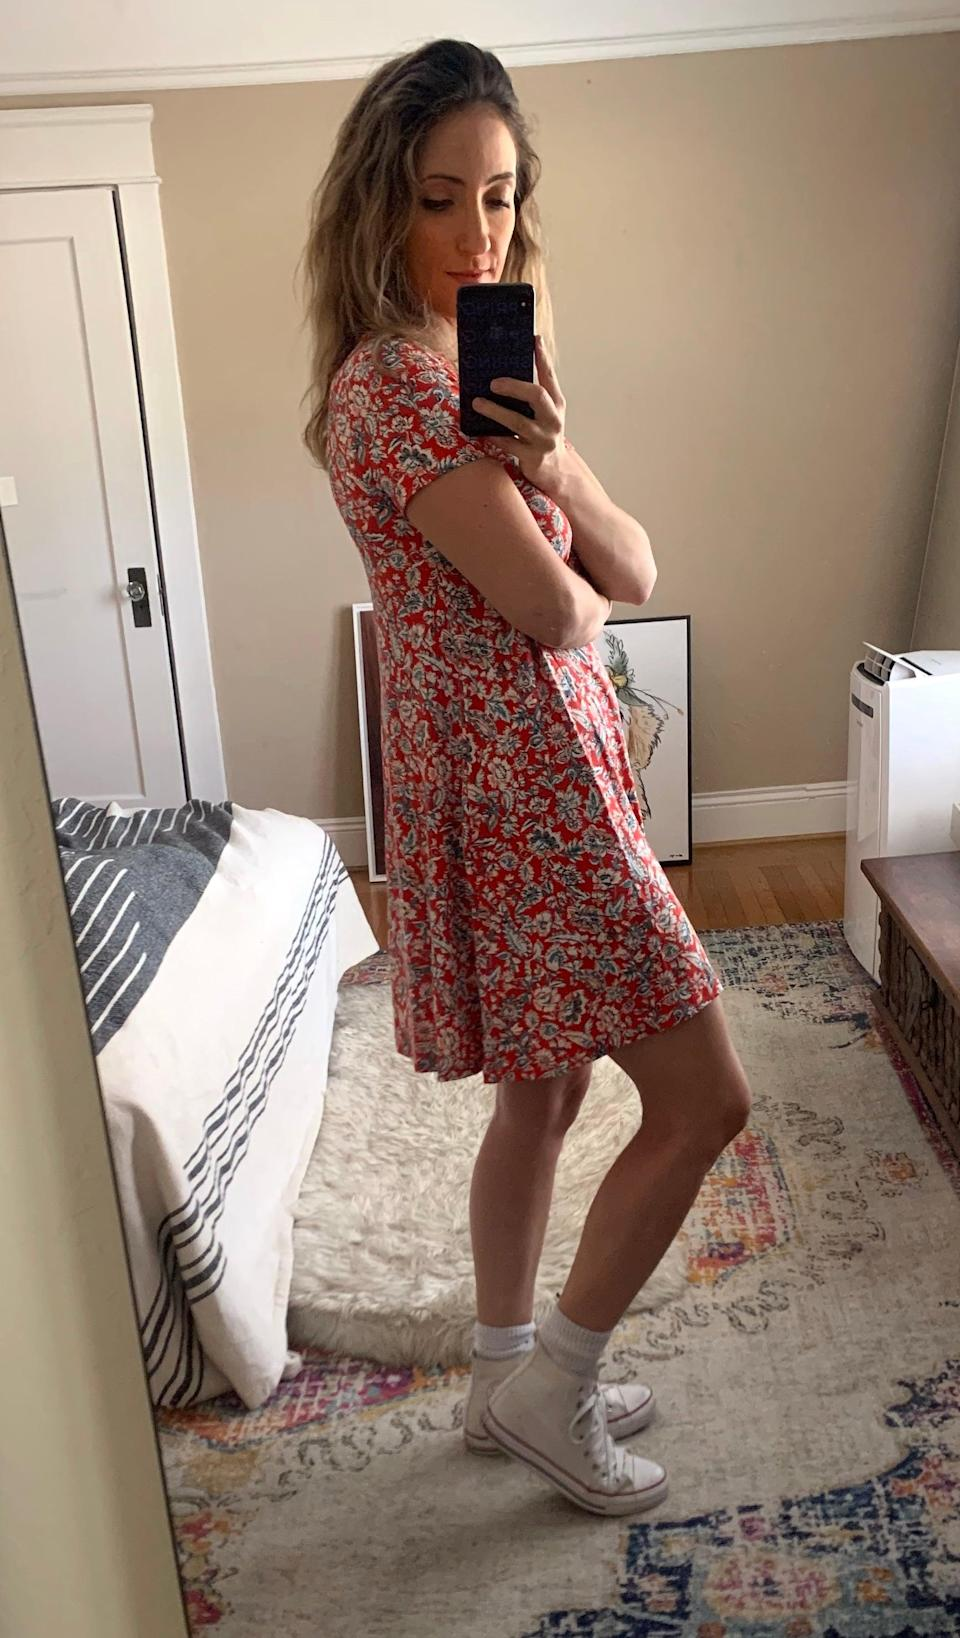 """<p><strong>Item</strong>: <span>Old Navy Jersey Swing Dress </span> ($21)</p> <p><strong>What our editor said: </strong>""""The dress fits exactly like a T-shirt up top and is relaxed through the body with a flared hem that swings out as you walk, so there is a ton of space to move around. I also didn't want it to be too long because I knew I'd want to wear the dress with socks and sneakers; I like when dresses hit a few inches up above the knee."""" - RB<br> If you want to read more here is the <a href=""""https://www.popsugar.com/fashion/comfortable-floral-dress-at-old-navy-editor-review-47582000"""" class=""""link rapid-noclick-resp"""" rel=""""nofollow noopener"""" target=""""_blank"""" data-ylk=""""slk:complete review"""">complete review</a>.</p>"""